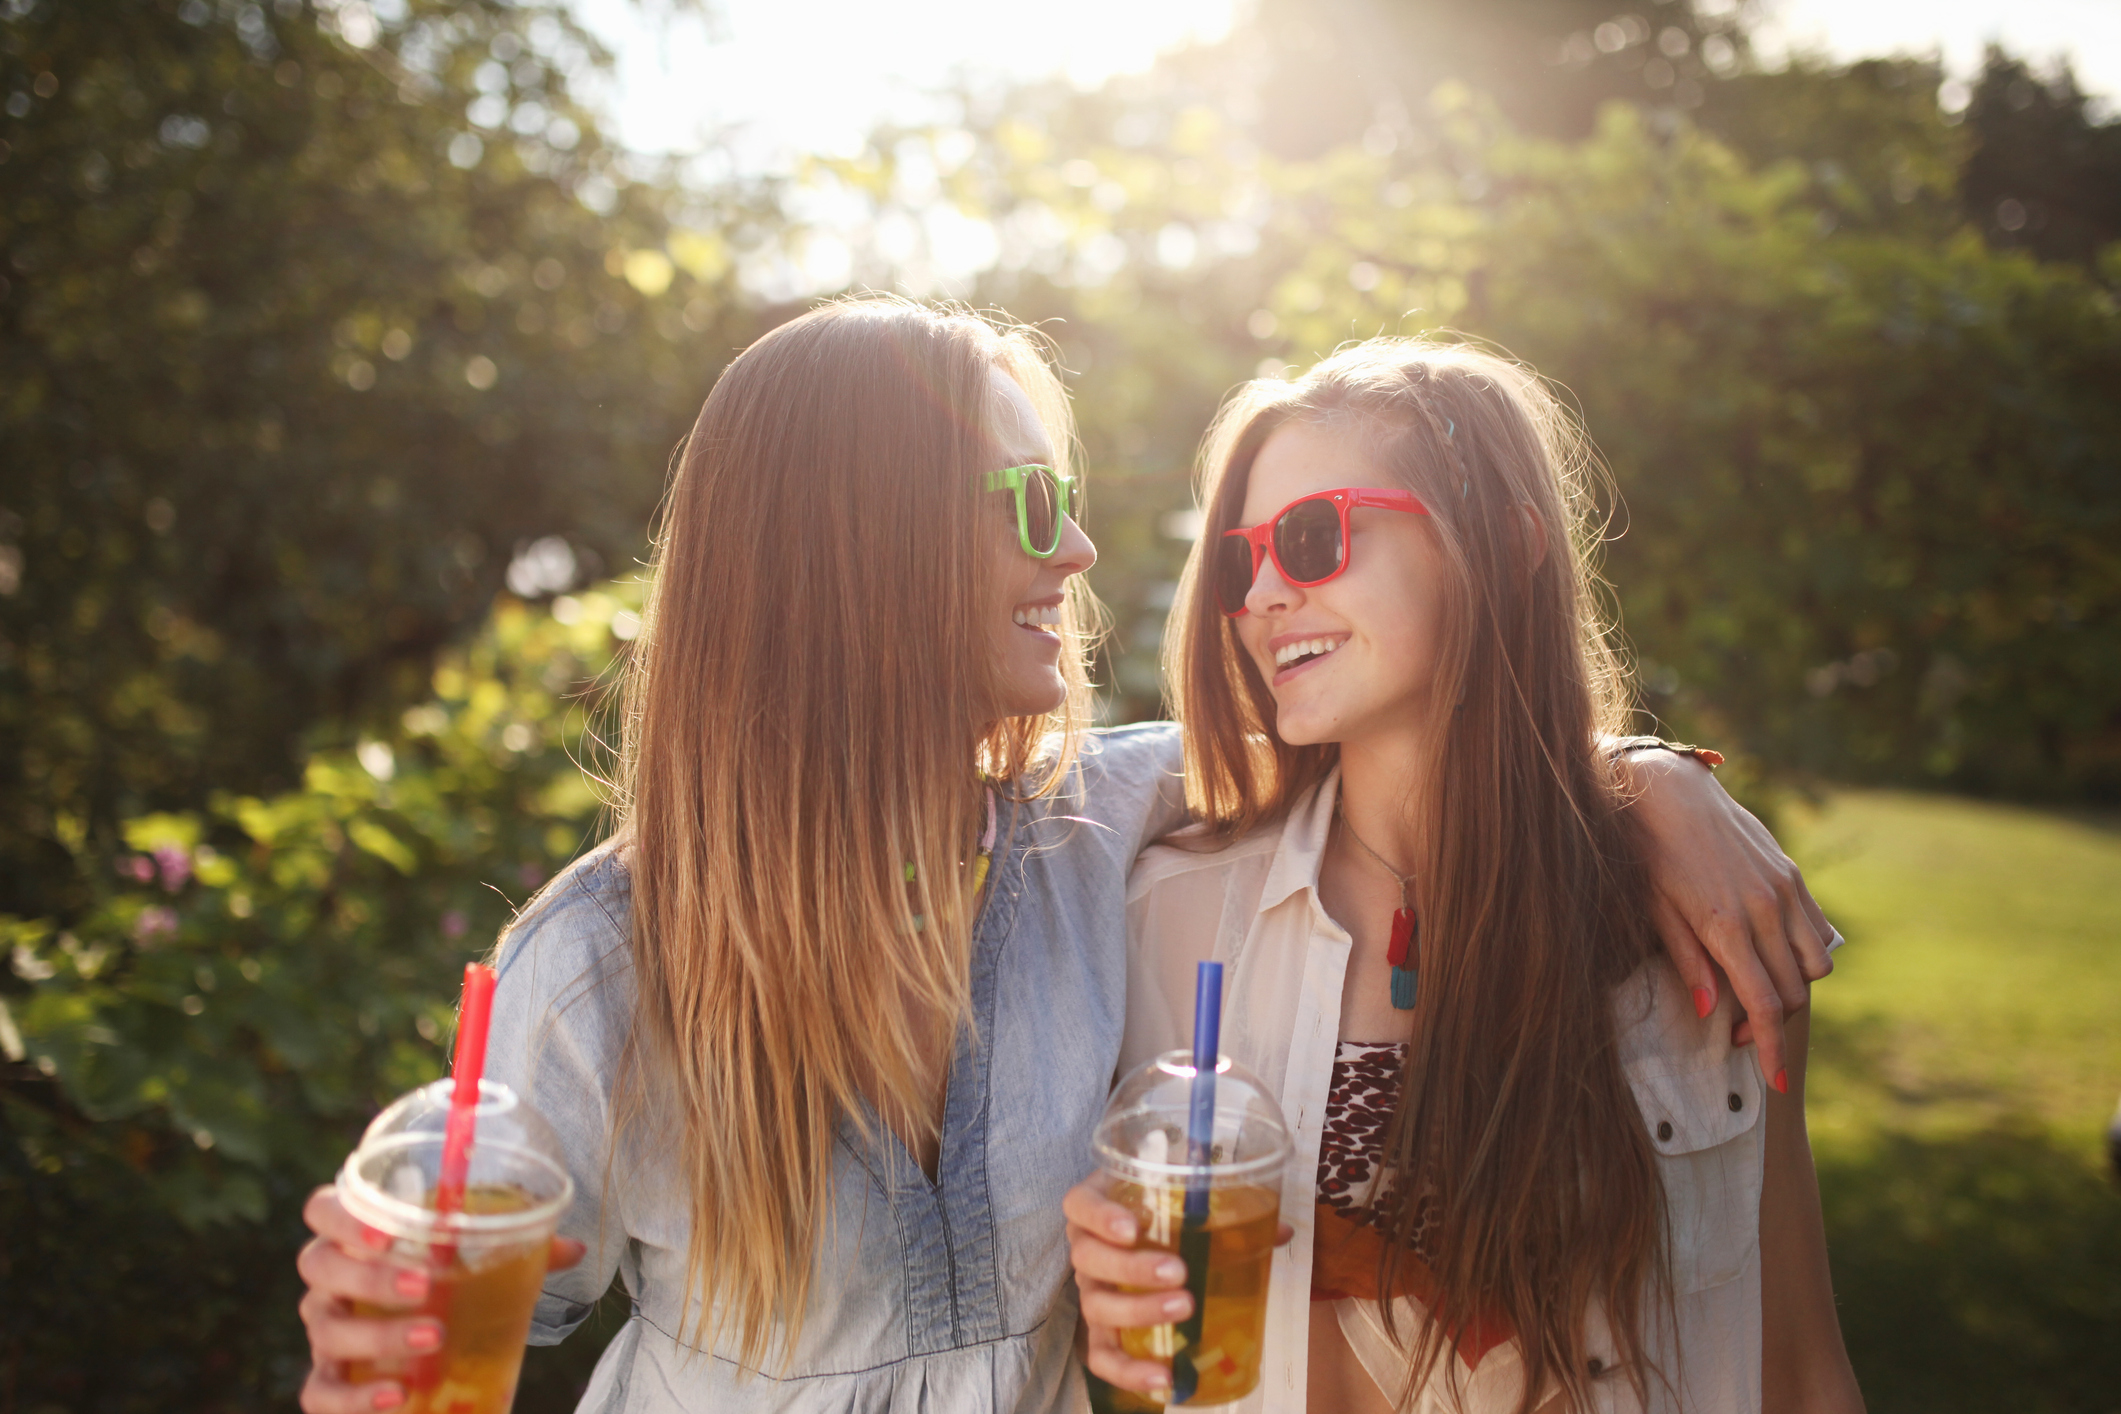 40 Important Questions To Ask A Friend Or Your Bff